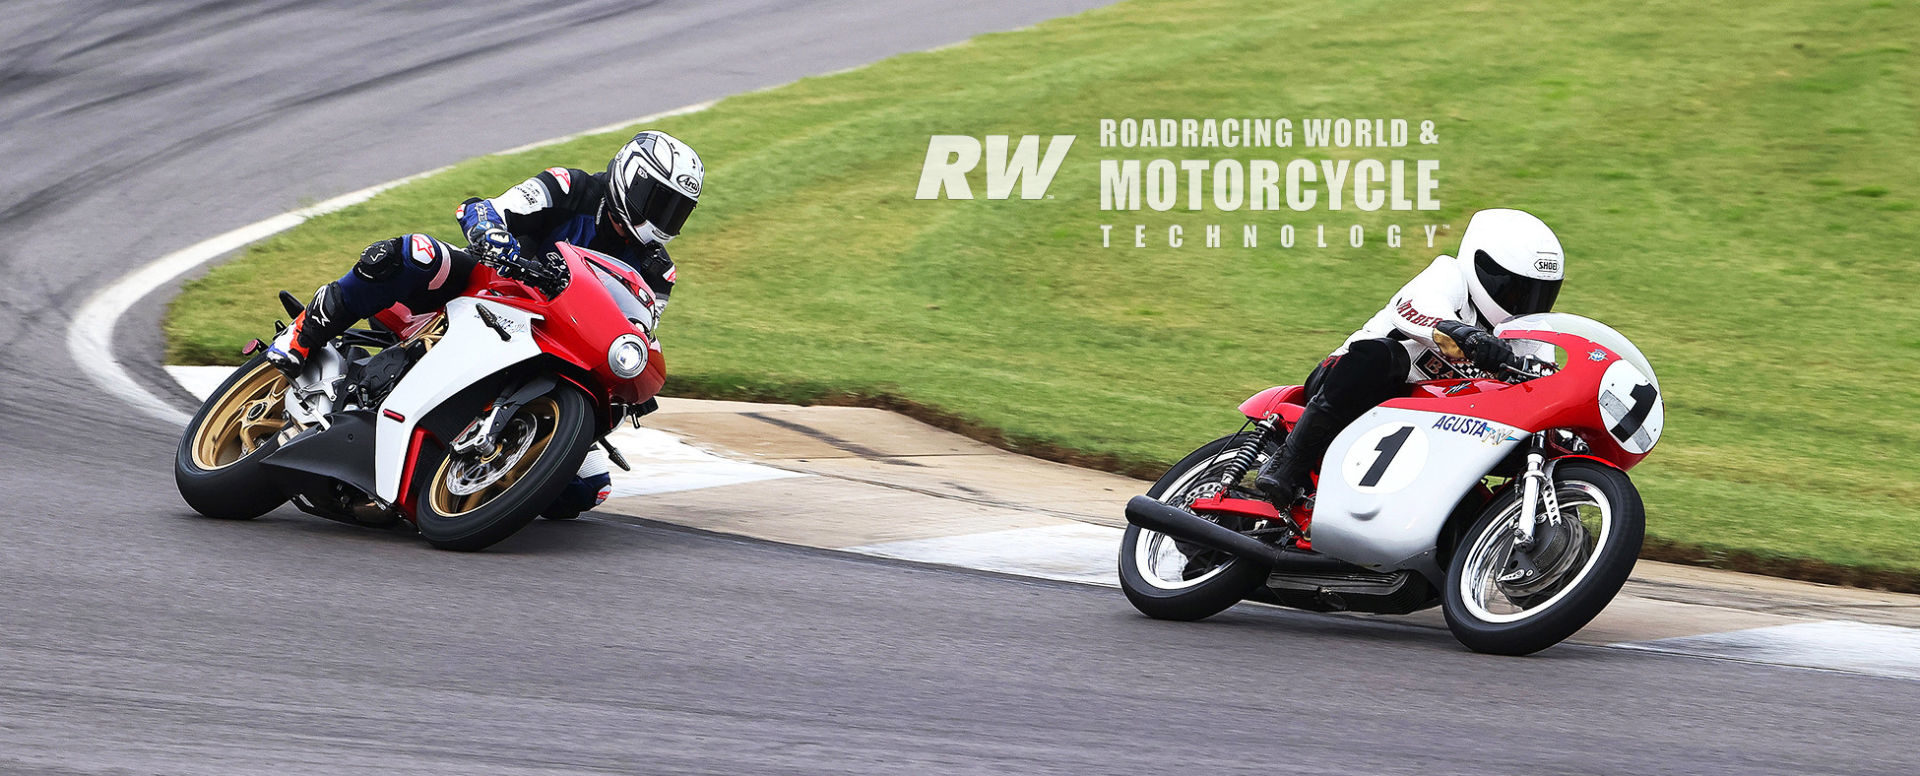 Racing Editor Ulrich following Chuck Huneycutt, (riding the MV Agusta Triple Giacomo Agostini used to win the 1967 500cc World Championship) for a video you can see on Roadracing World's YouTube channel. Photo by Brian J. Nelson.